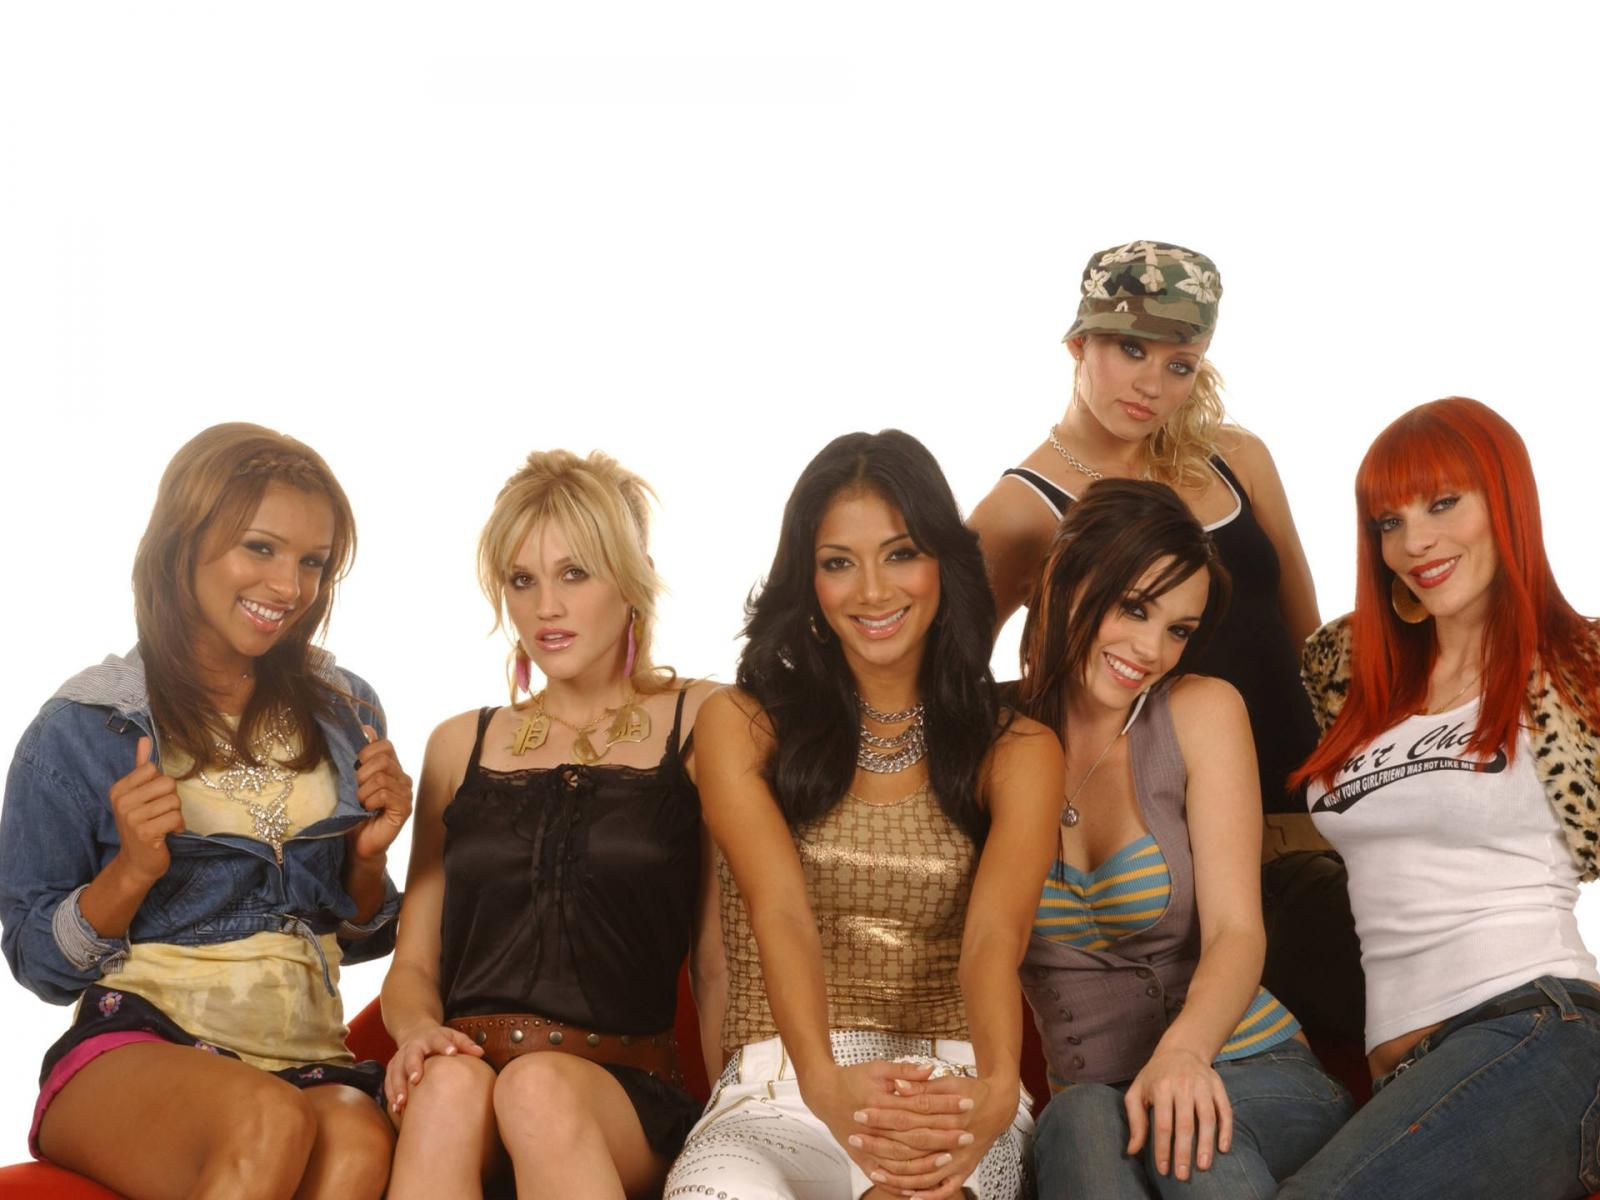 Pussycat Dolls wallpapers and images   wallpapers pictures photos 1600x1200